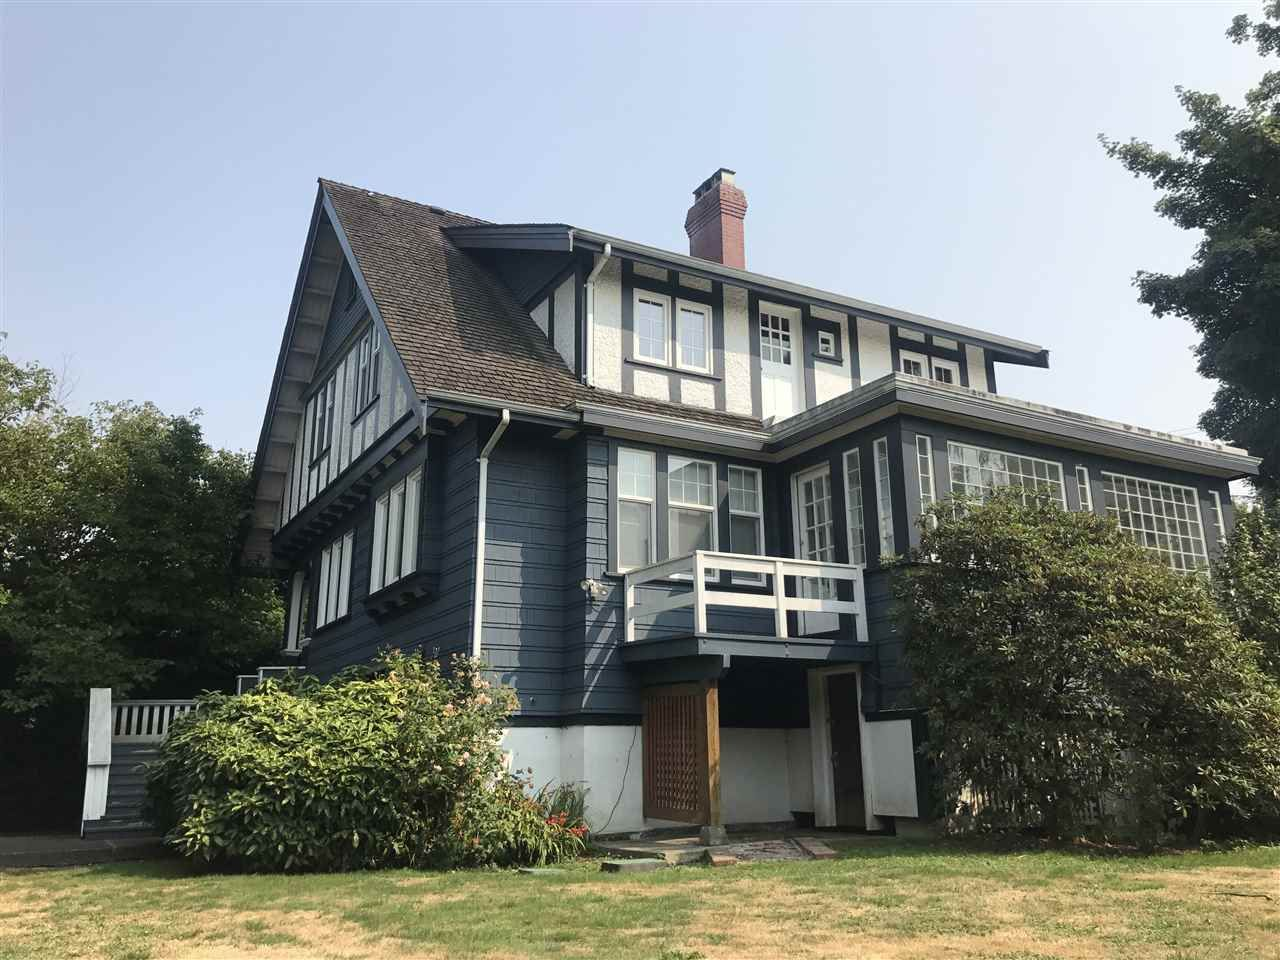 Main Photo: 1774 W 16TH Avenue in Vancouver: Shaughnessy House for sale (Vancouver West)  : MLS®# R2196416